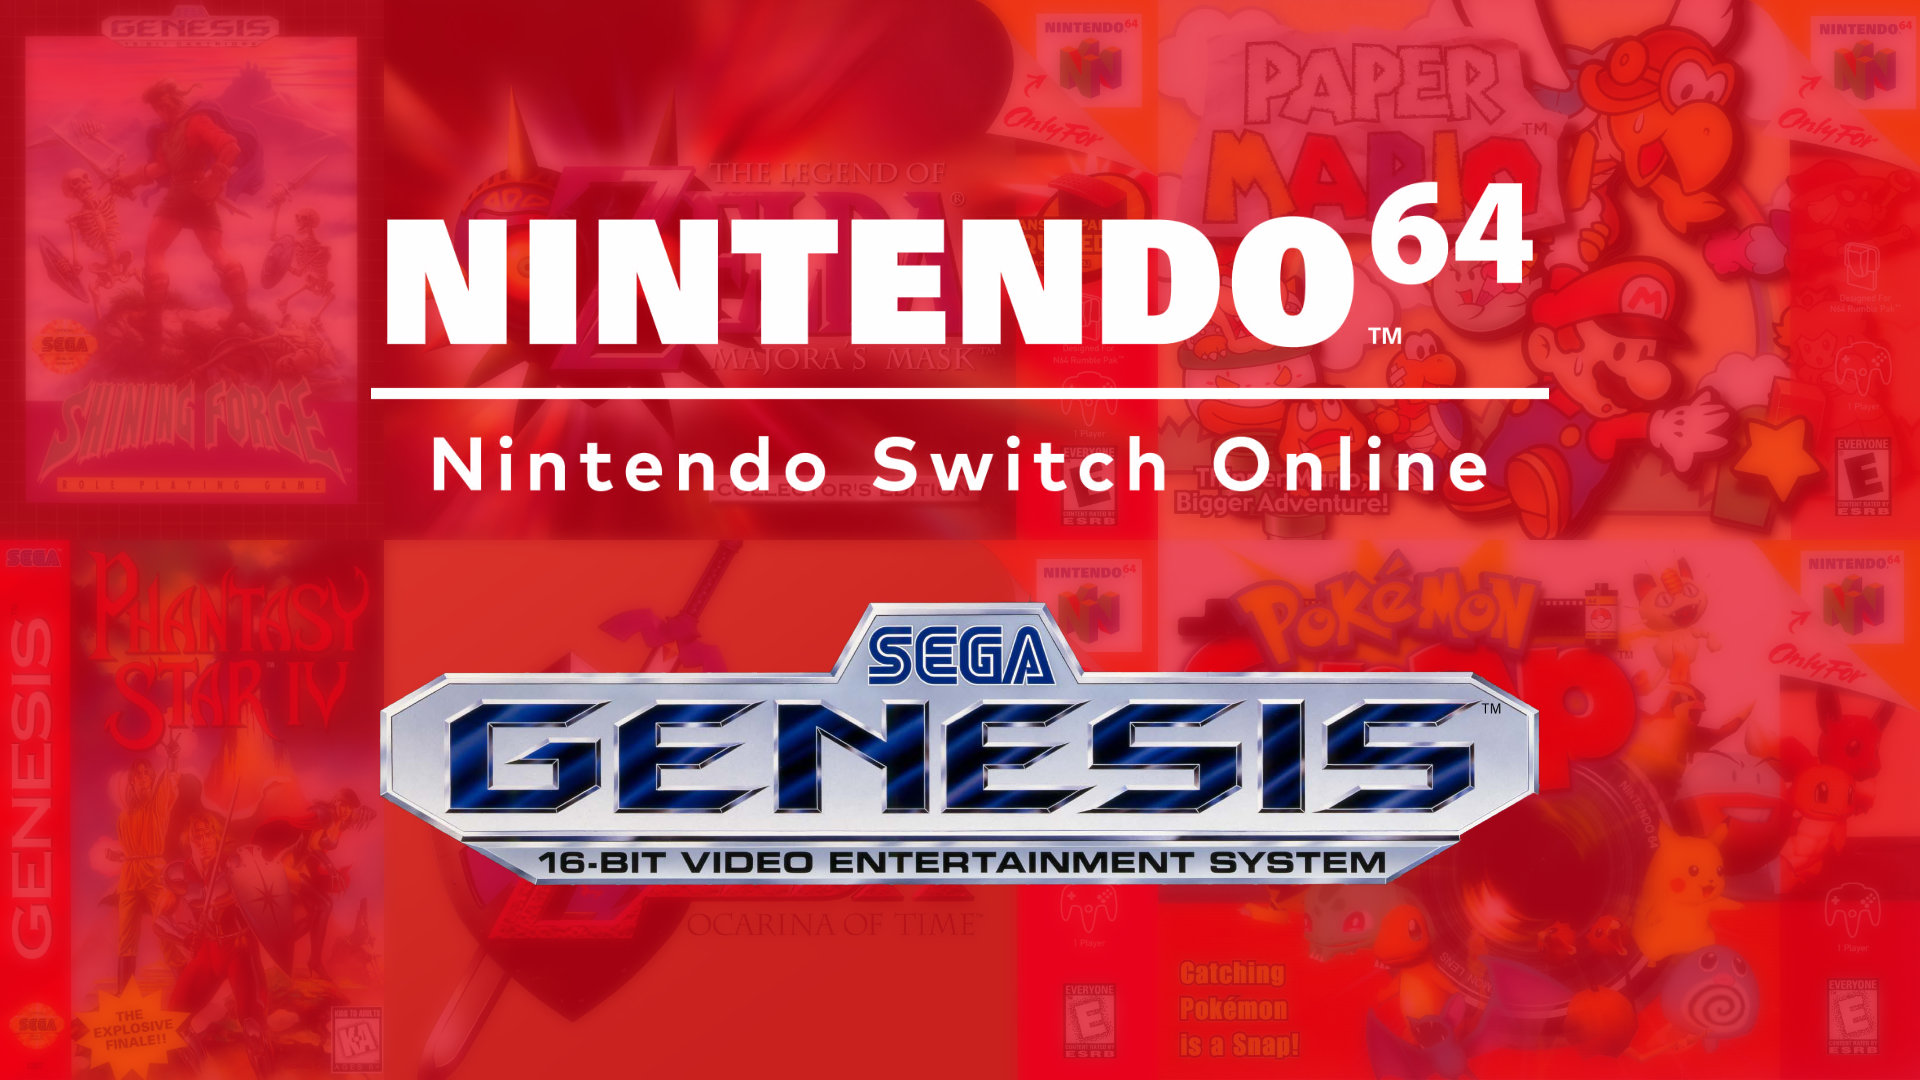 Nintendo Switch Online Expansion Pack artwork with Nintendo 64 and Sega Genesis logo over faded box art collage.